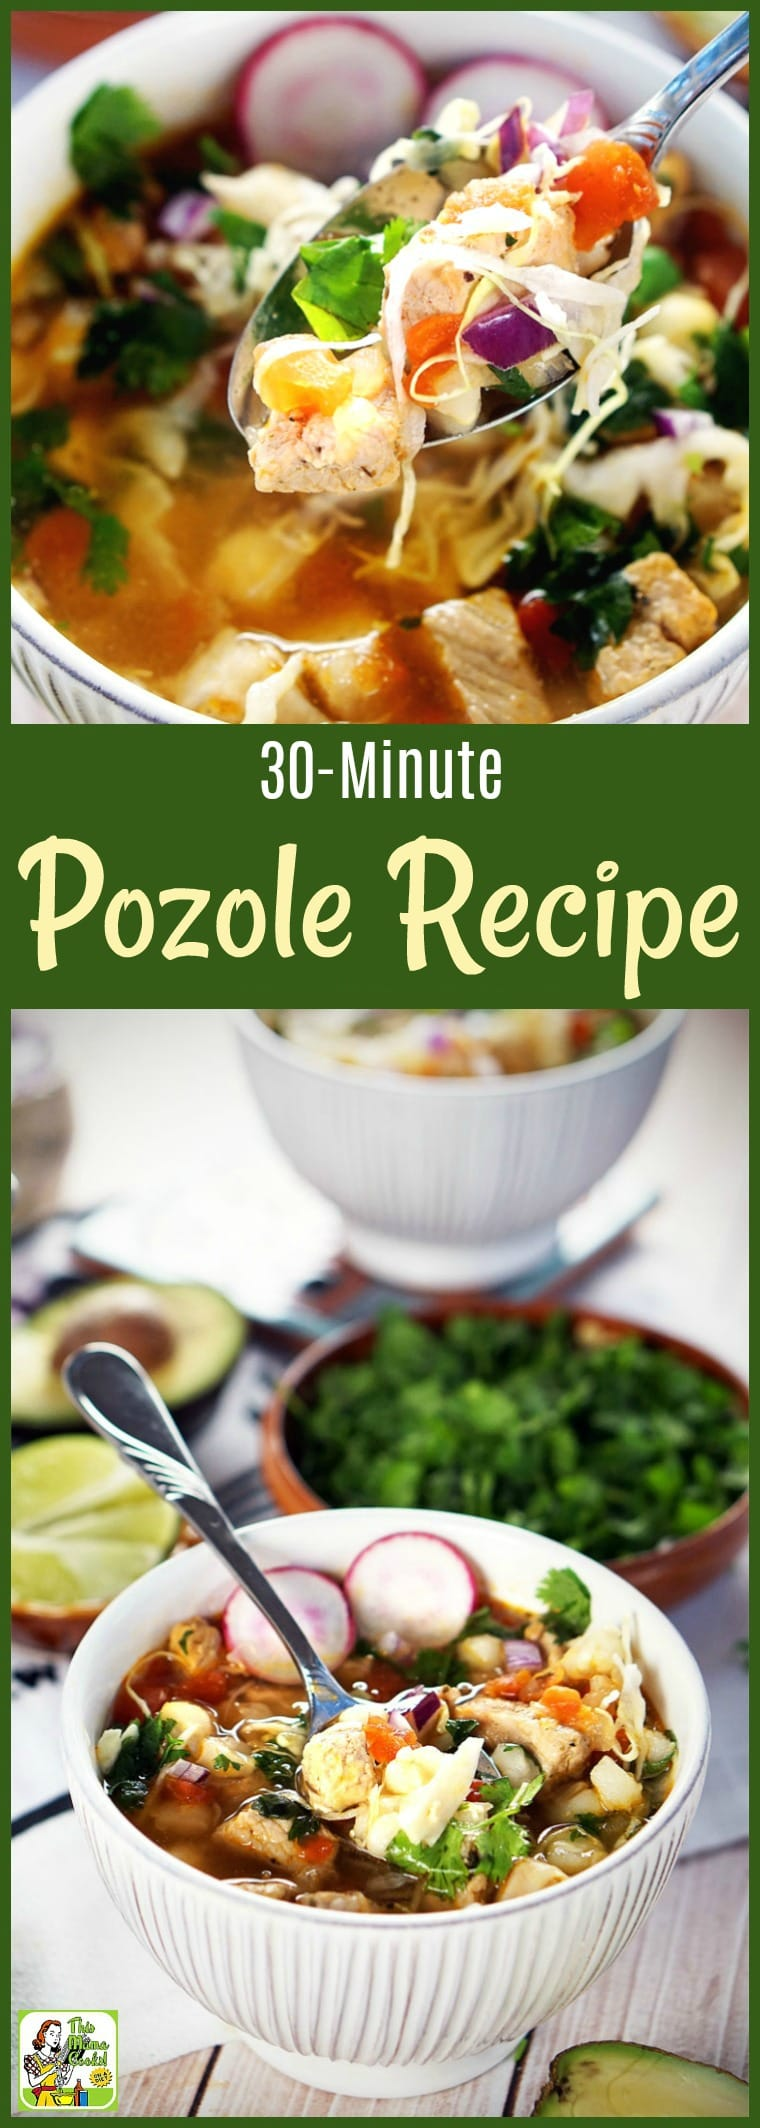 Want to know how to make pozole in less than 30 minutes? This pork pozole recipe combines pozole verde and pozole rojo. Can be made with chicken, too! #pork #soup #pozole #posole #Mexicanfood #under30 #30minutes #recipe #easy #recipeoftheday #healthyrecipes #glutenfree #easyrecipes